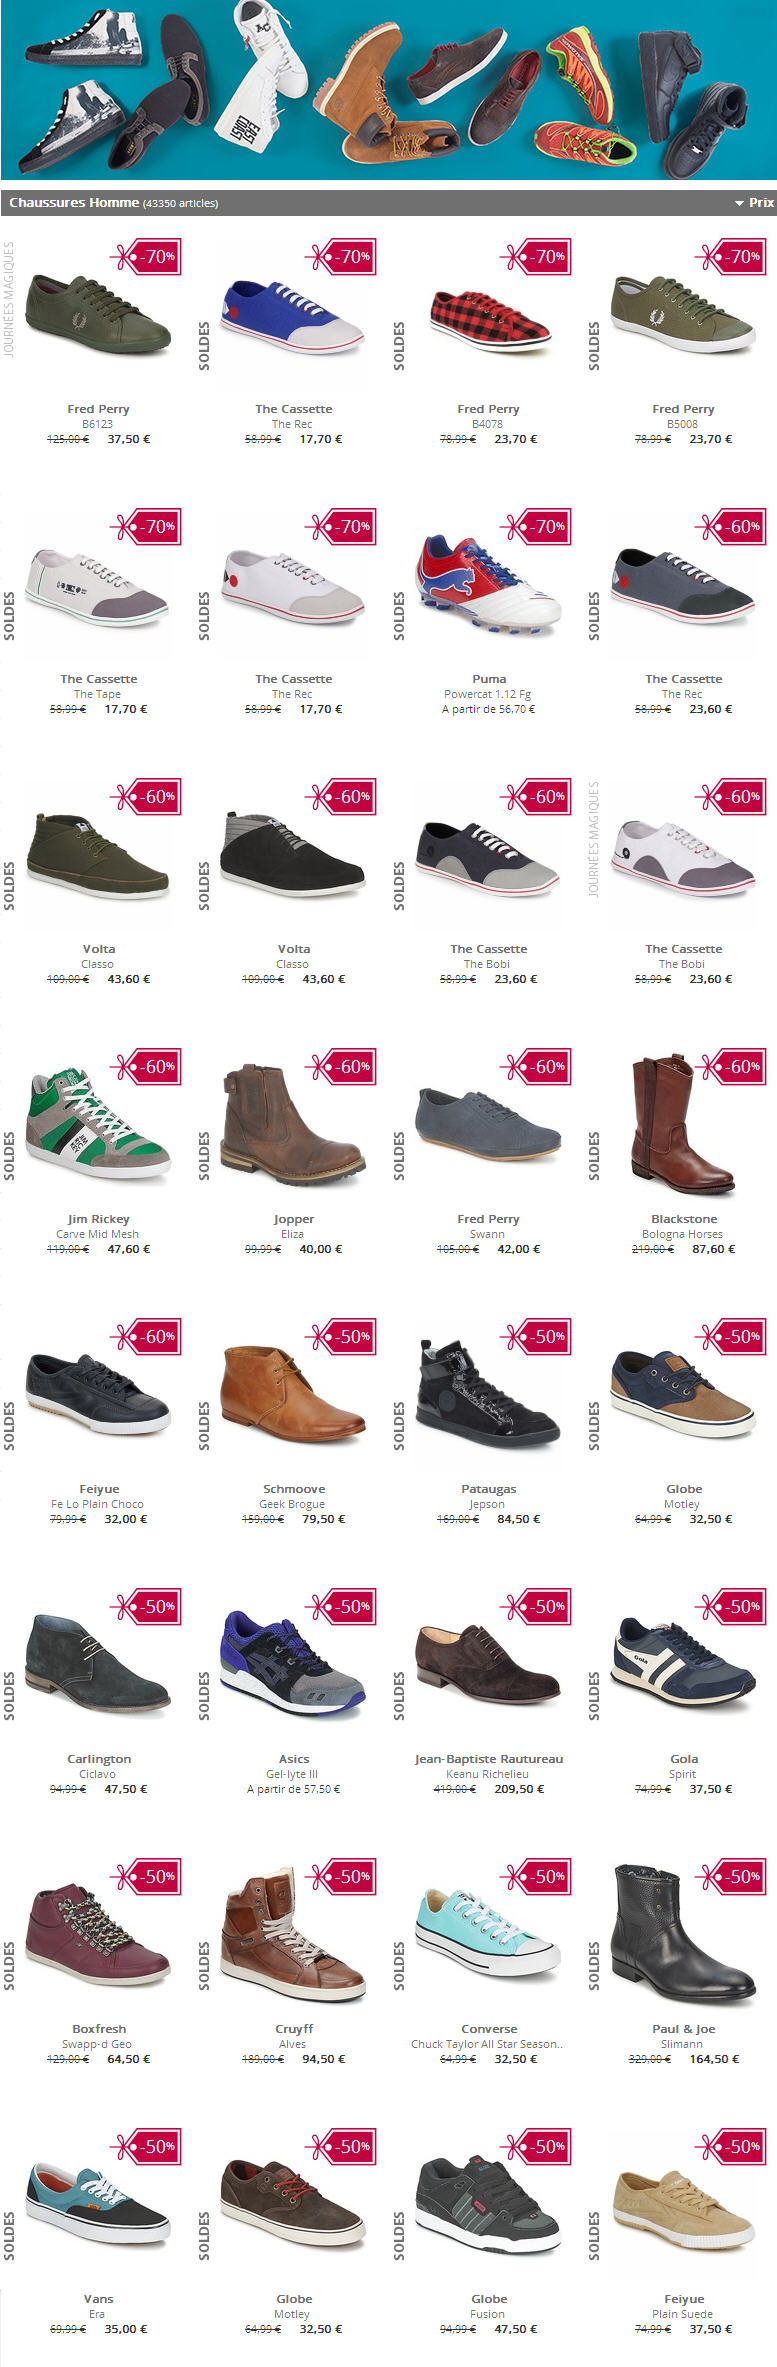 Soldes Chaussures Homme Spartoo